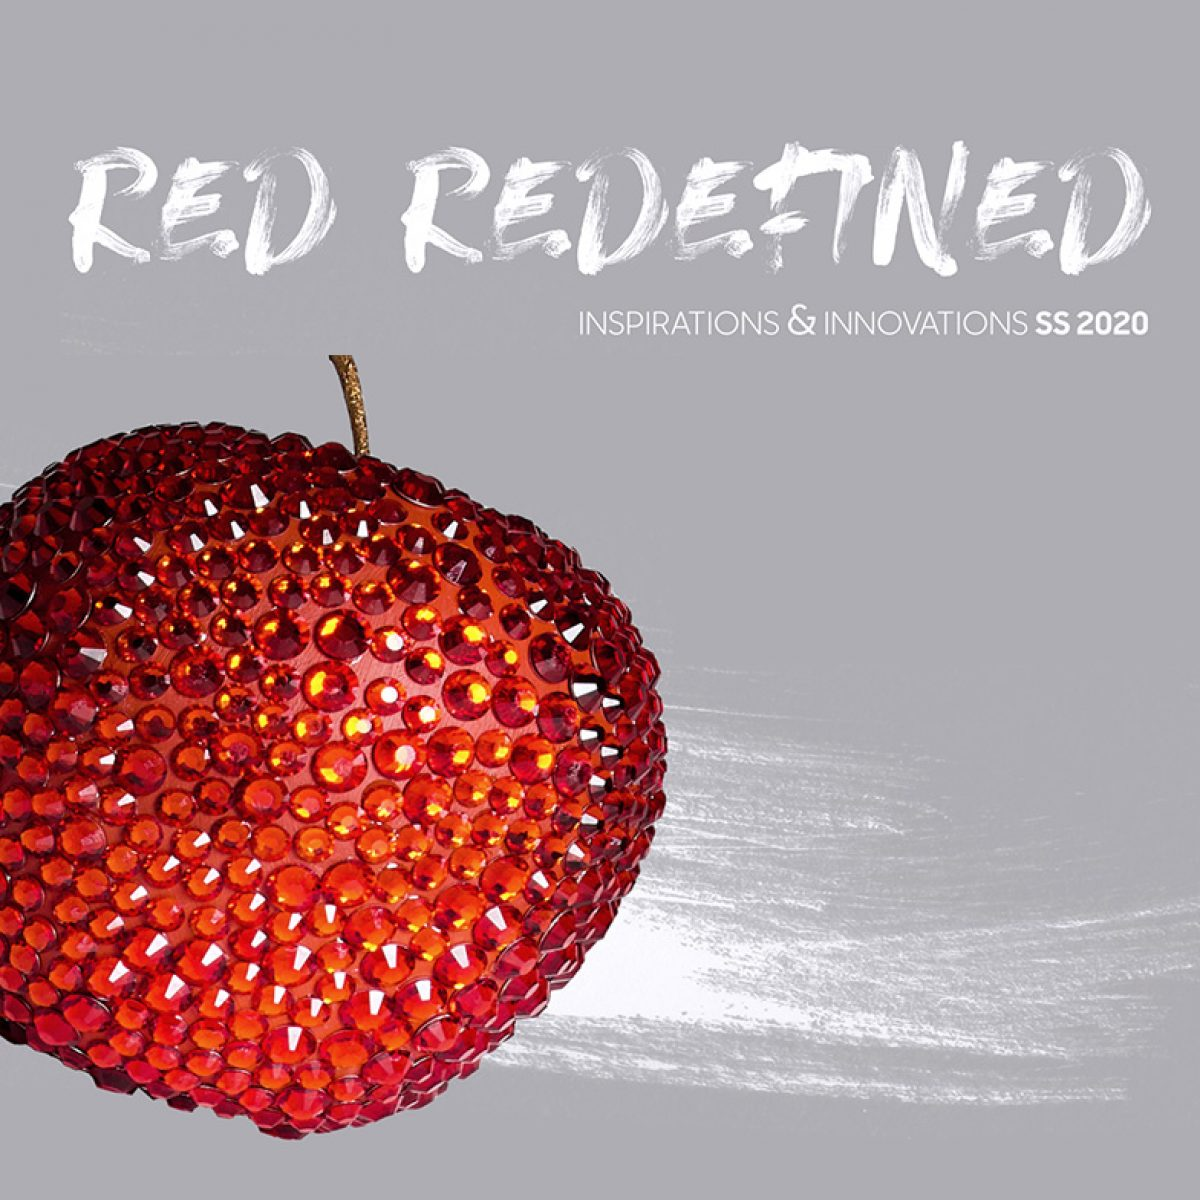 Red Redefined Summer 2020